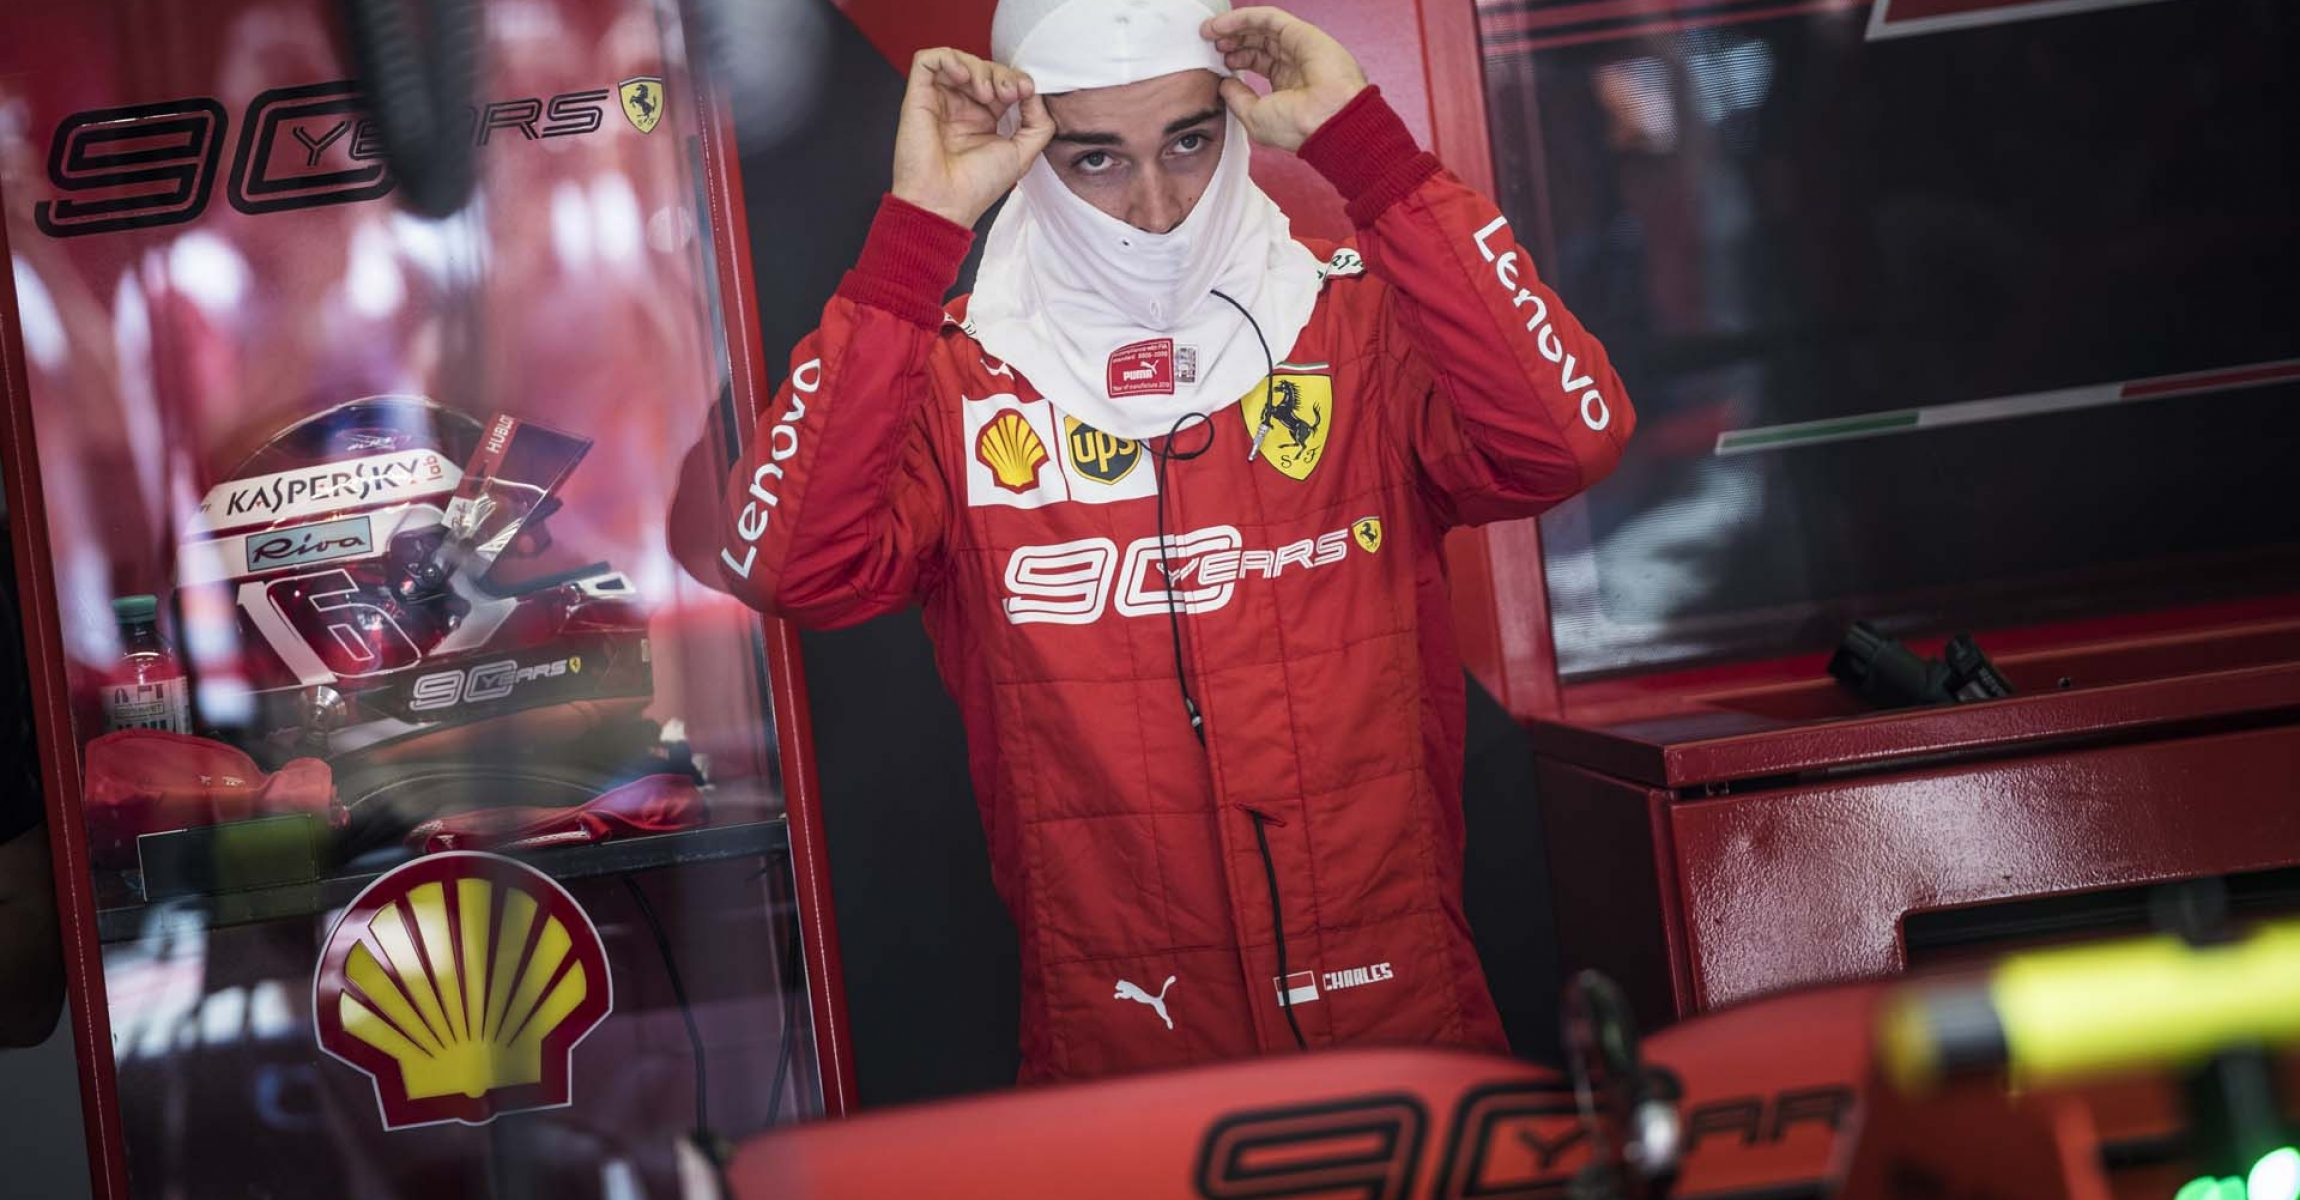 Charles Leclerc races at the FIA Formula One World Championship 2019 in Spielberg, Austria on June 29, 2019 // Philip Platzer/Red Bull Content Pool // AP-1ZSYDWWAW1W11 // Usage for editorial use only // Please go to www.redbullcontentpool.com for further information. //